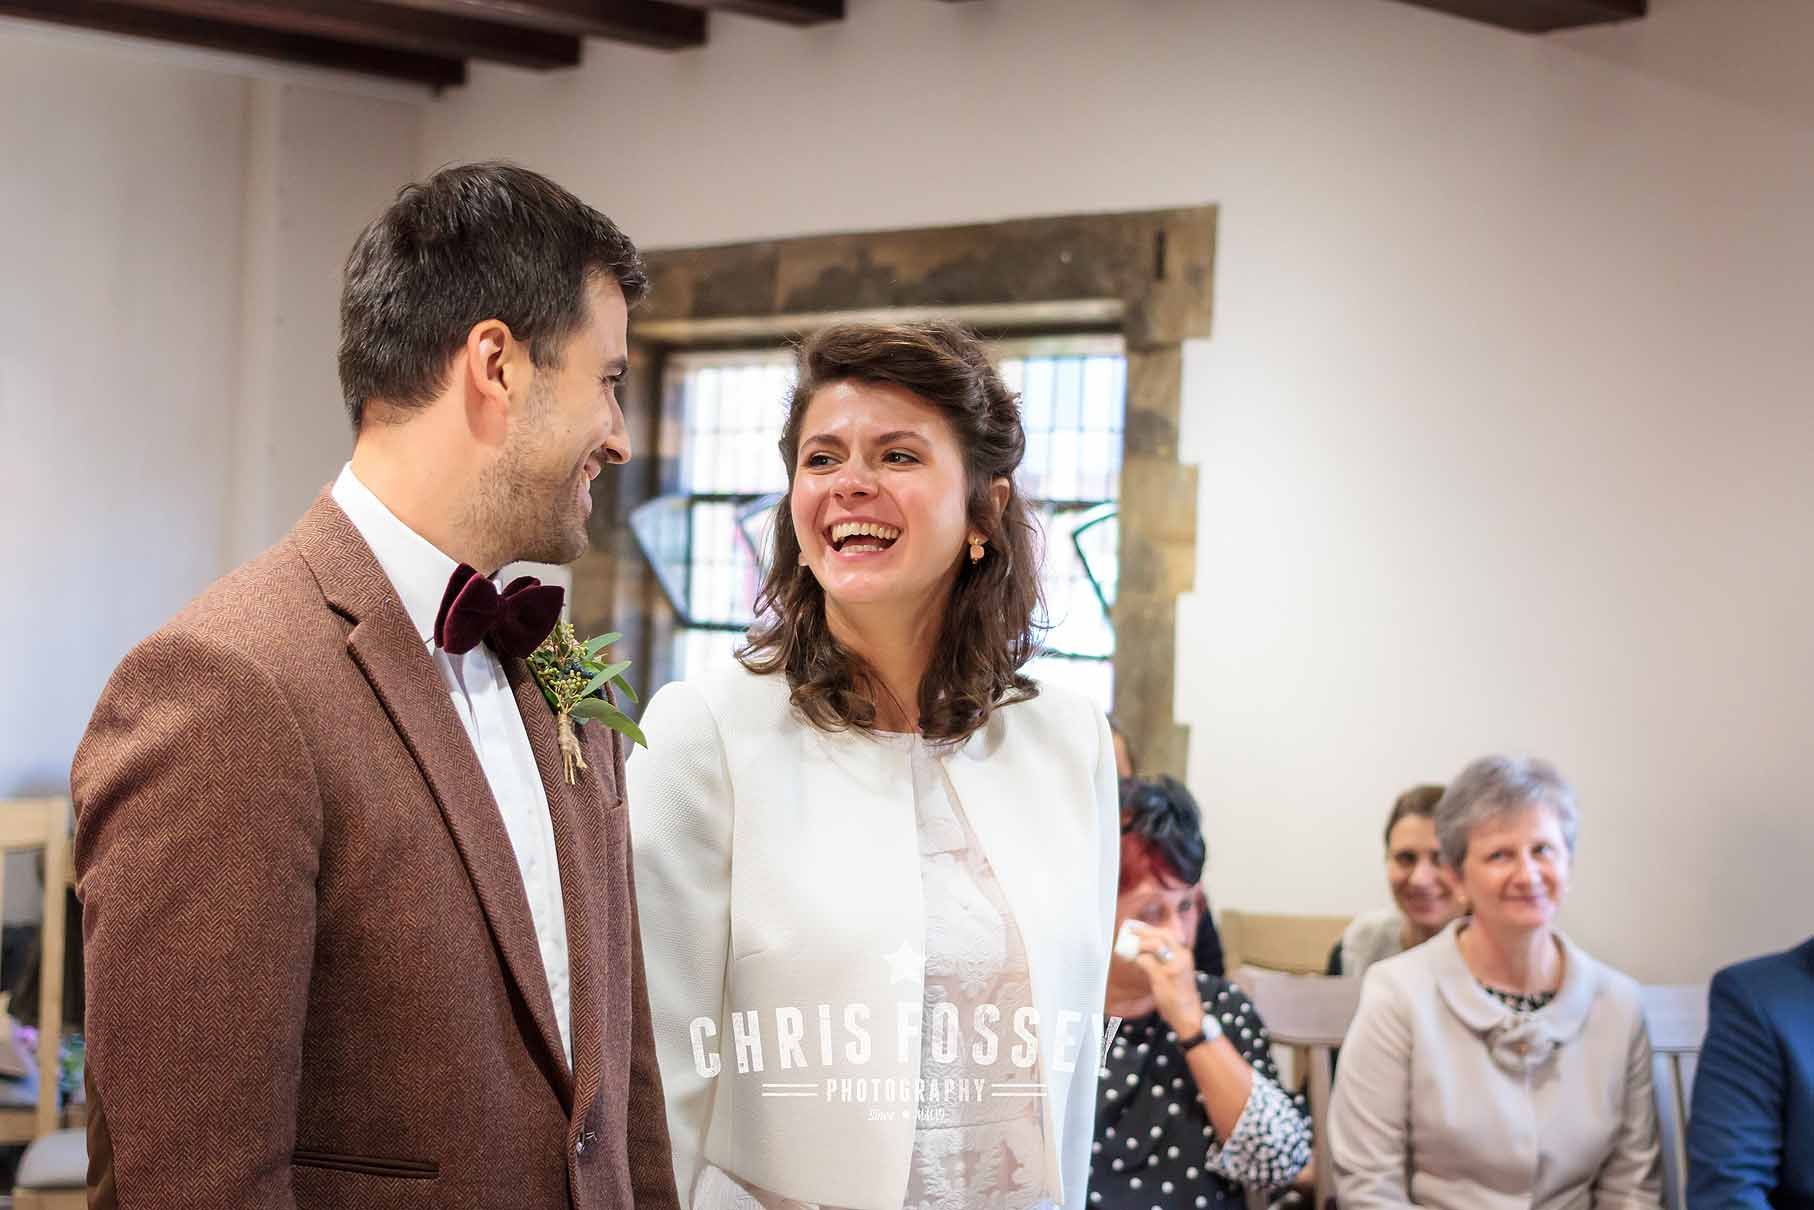 Wedding Photography The Henley Room Stratford-upon-Avon by Chris Fossey Photography